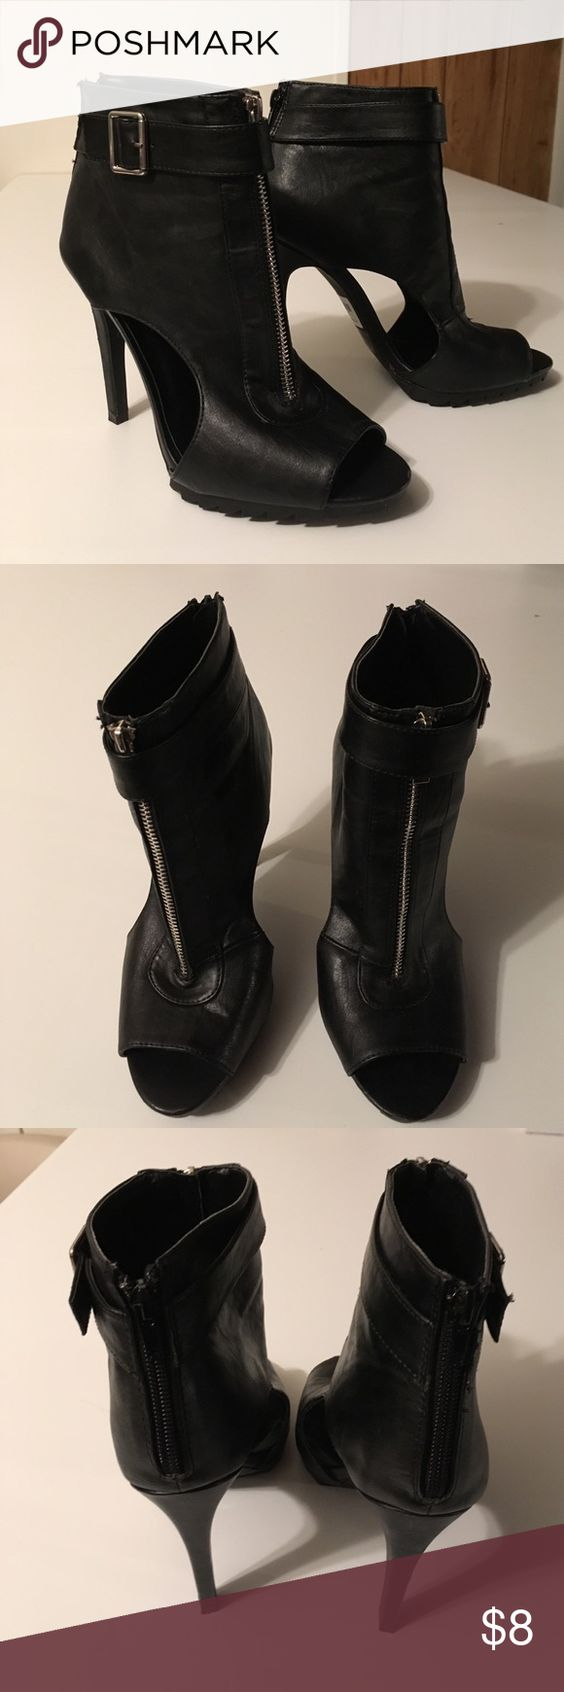 Charlotte Russe Heels Price sticker says Style Liya 18X BLK. Black heel with zipper in front and back. Open toe. Only wore once. Charlotte Russe Shoes Heels